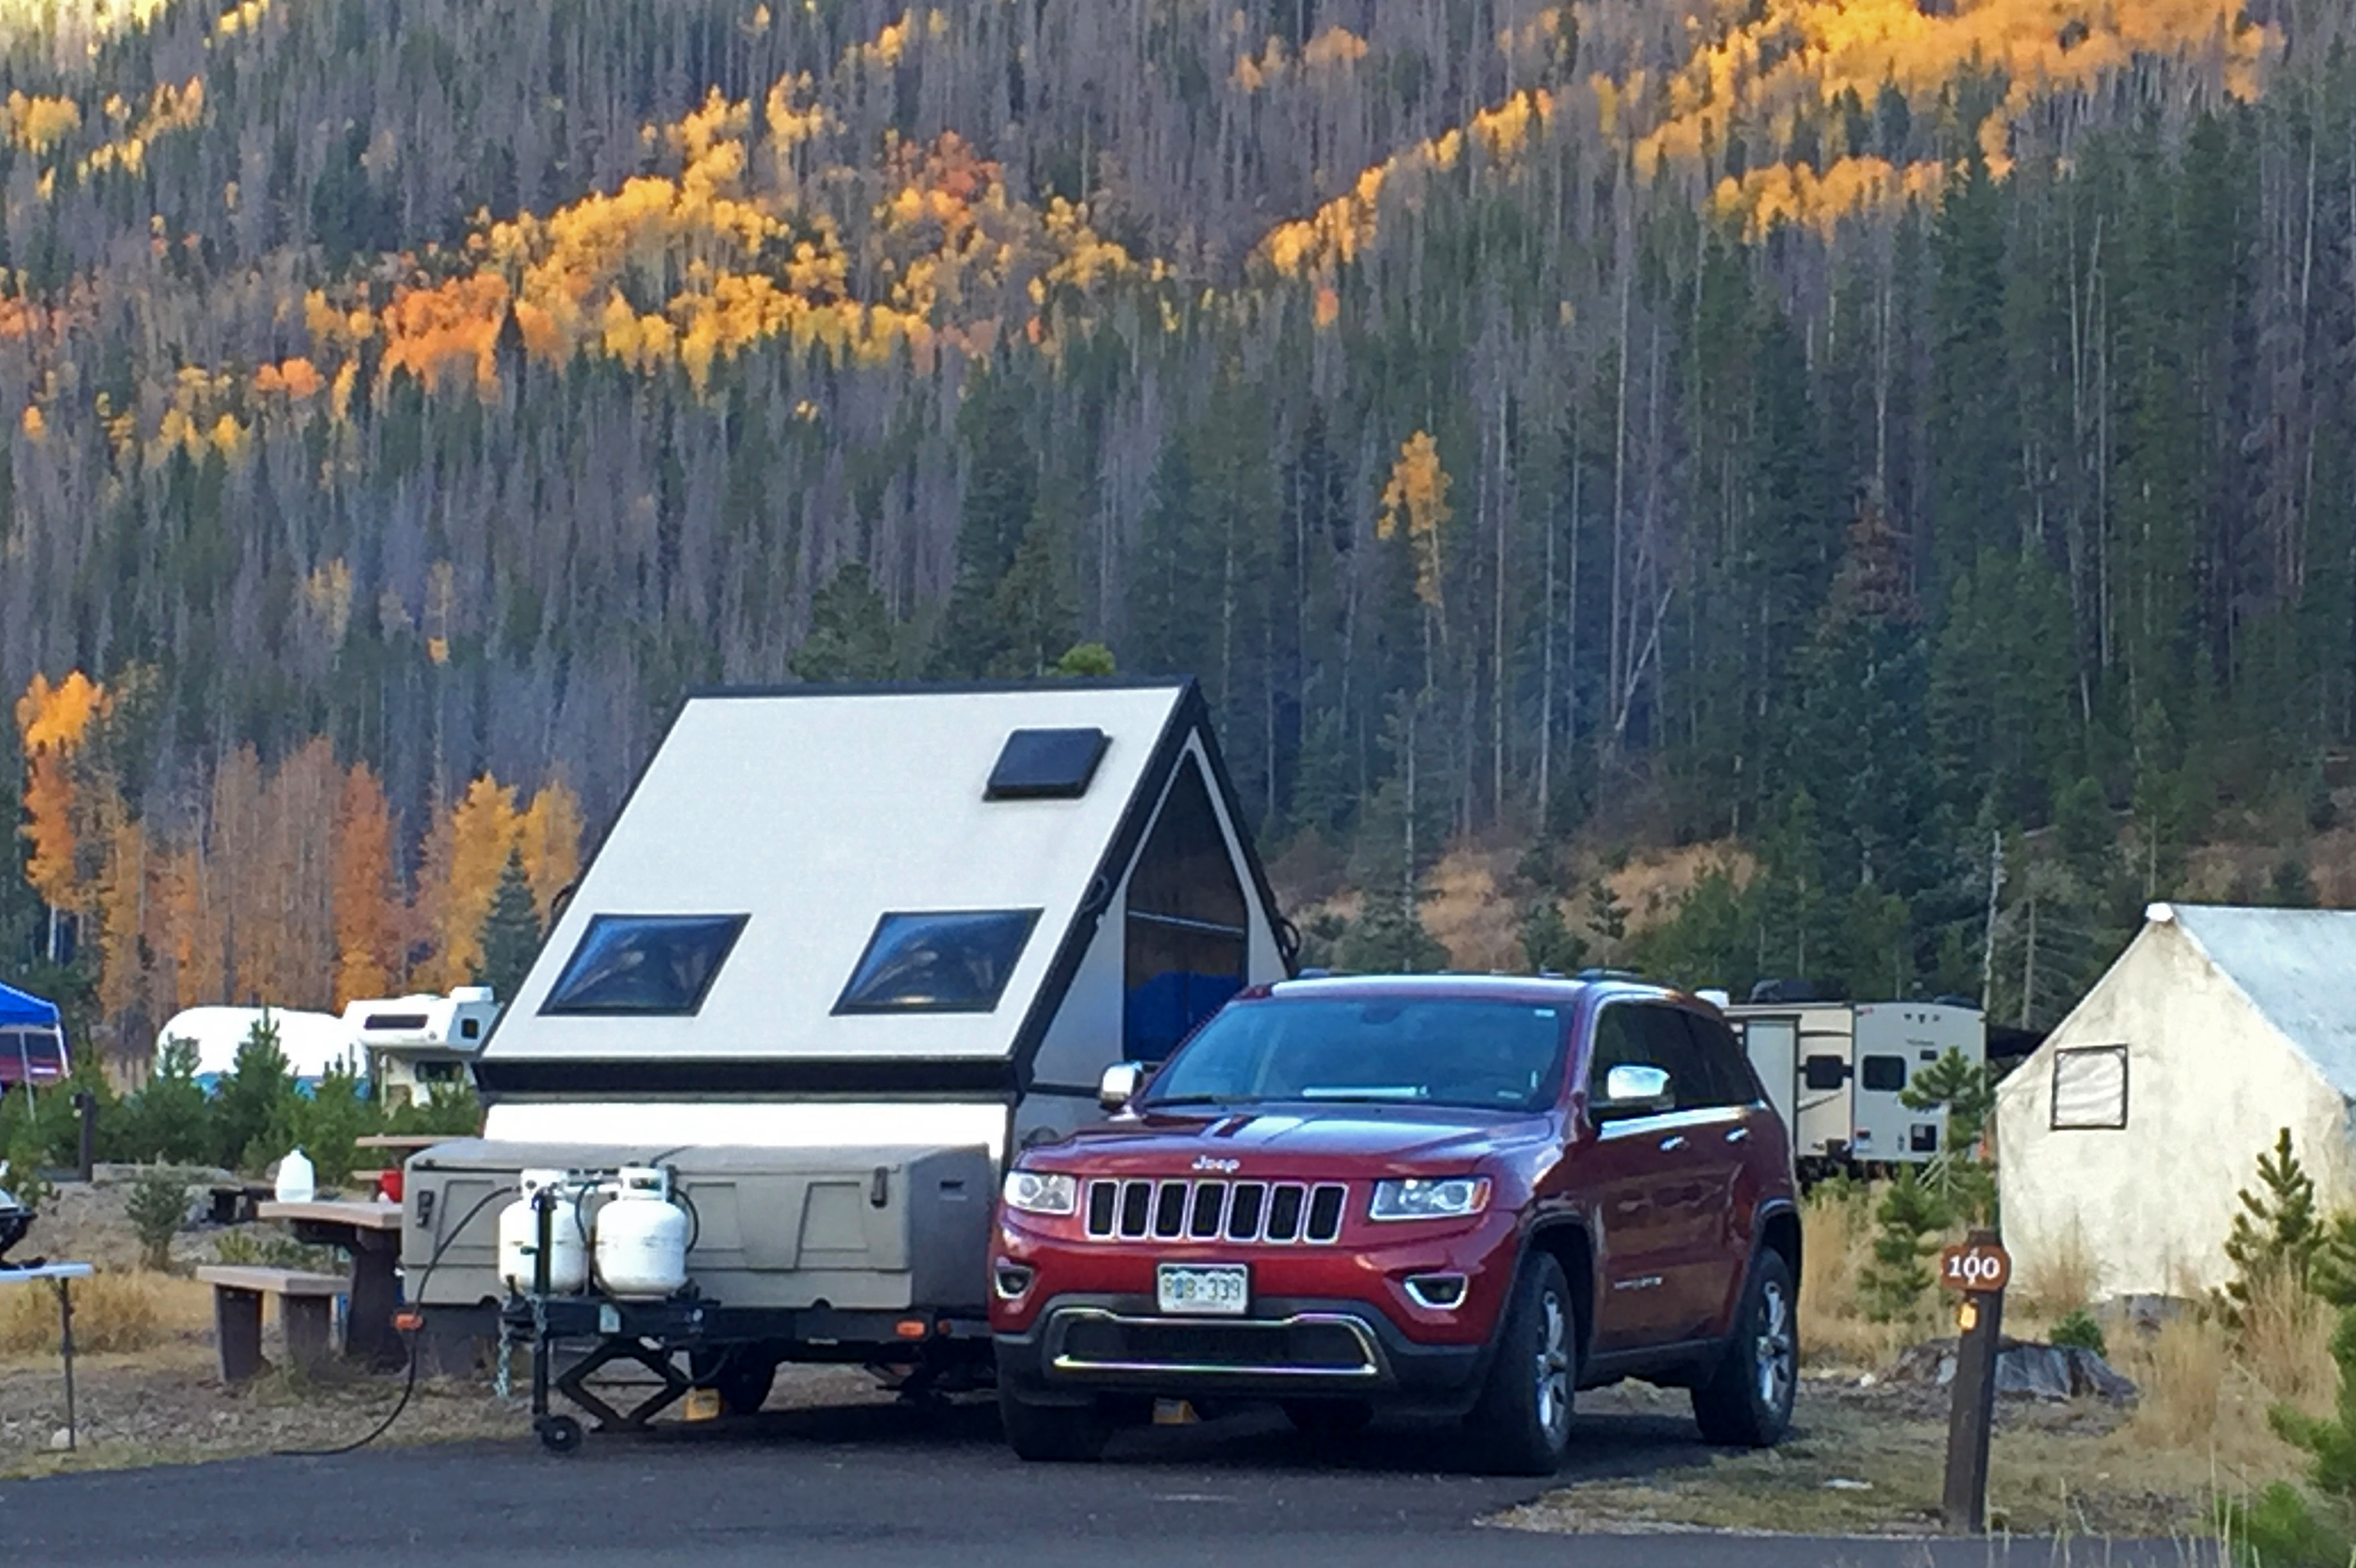 A pop up trailer from Adventure Camper Rentals in Southeast Metro Denver, Colorado